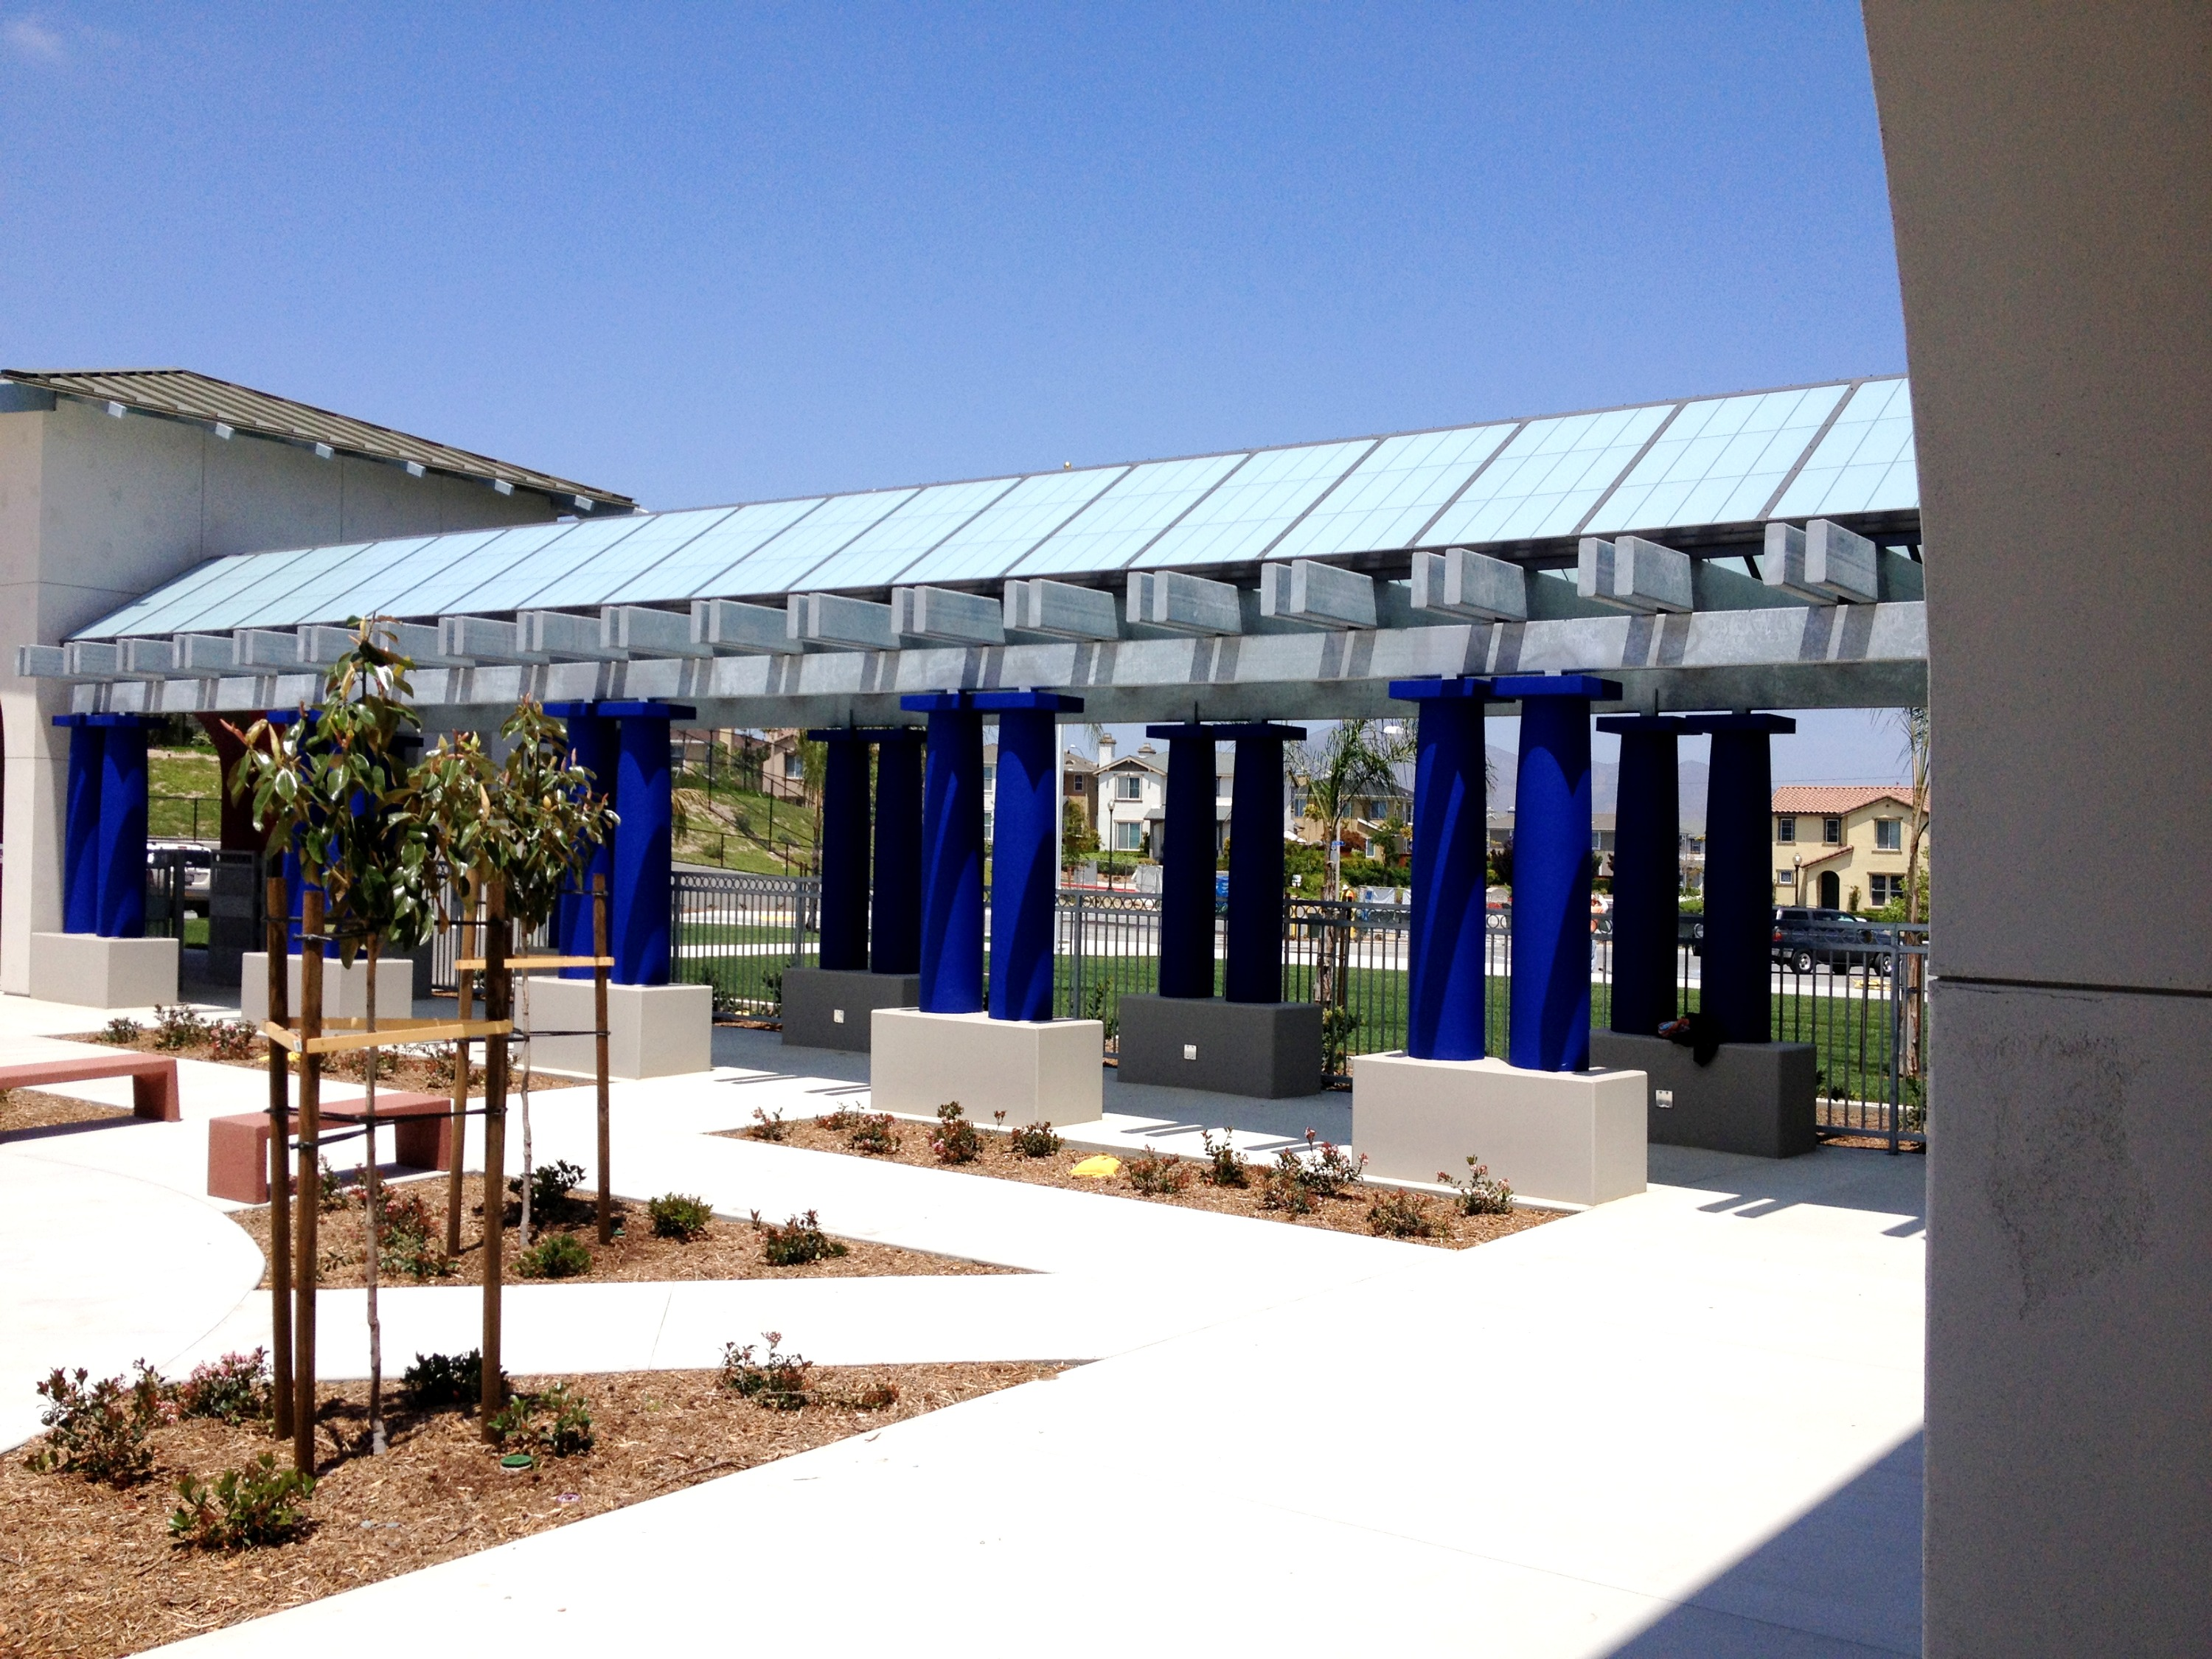 Otay Ranch Elementary School